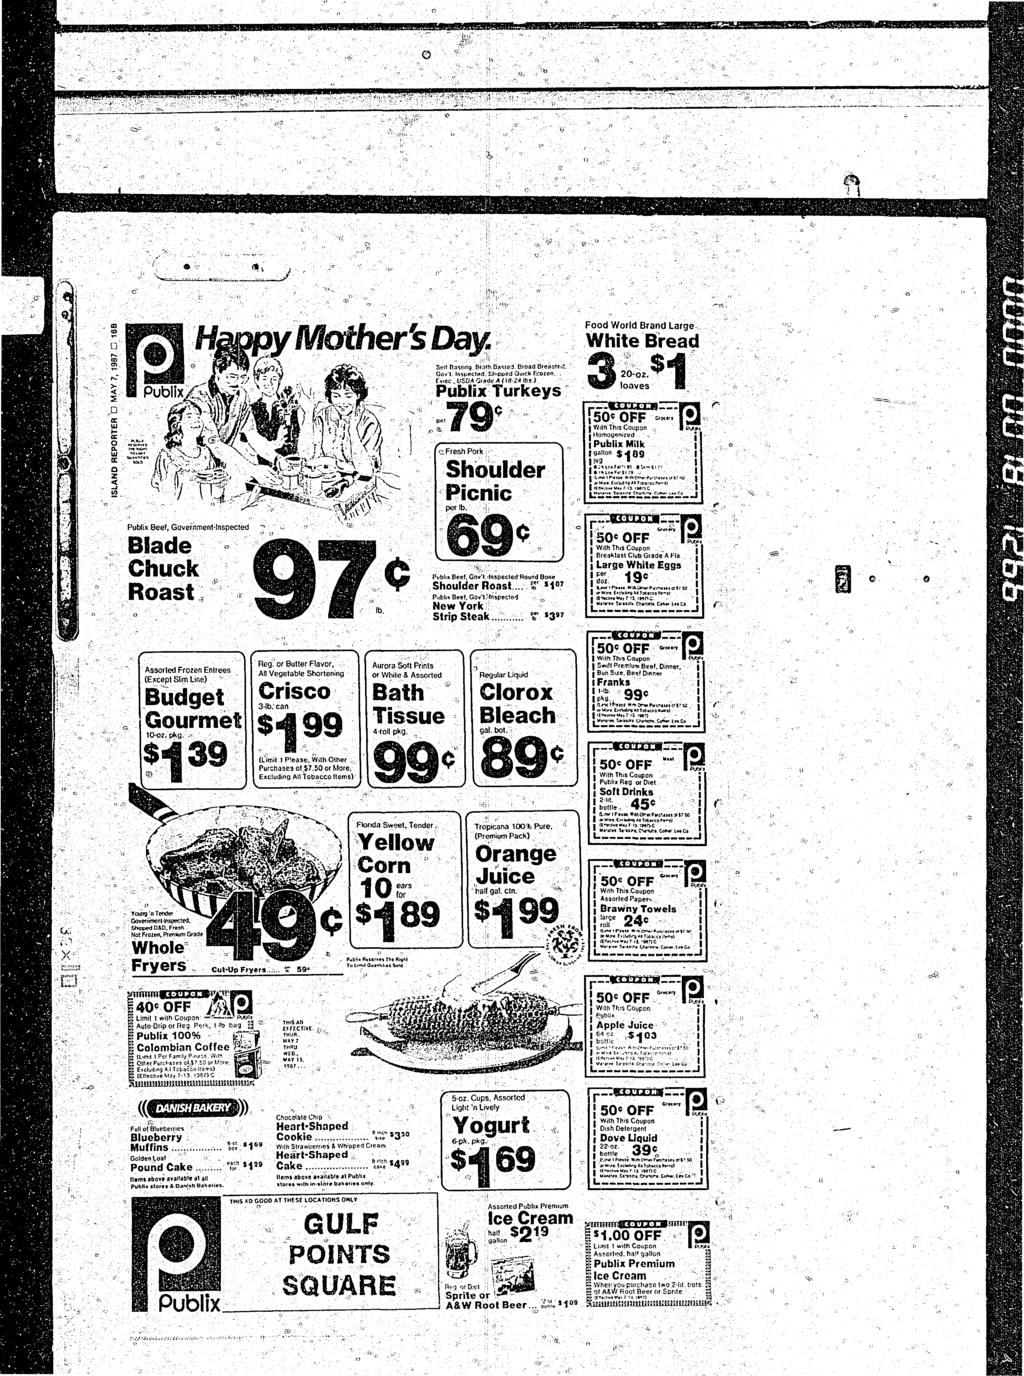 Plenty Of Tampon Action In Reel Nautical Newsfv May 71987 Wiring Money Publix C Beef Government Inspected Blade Chuck Roast Assorted Frozen Entrees Except